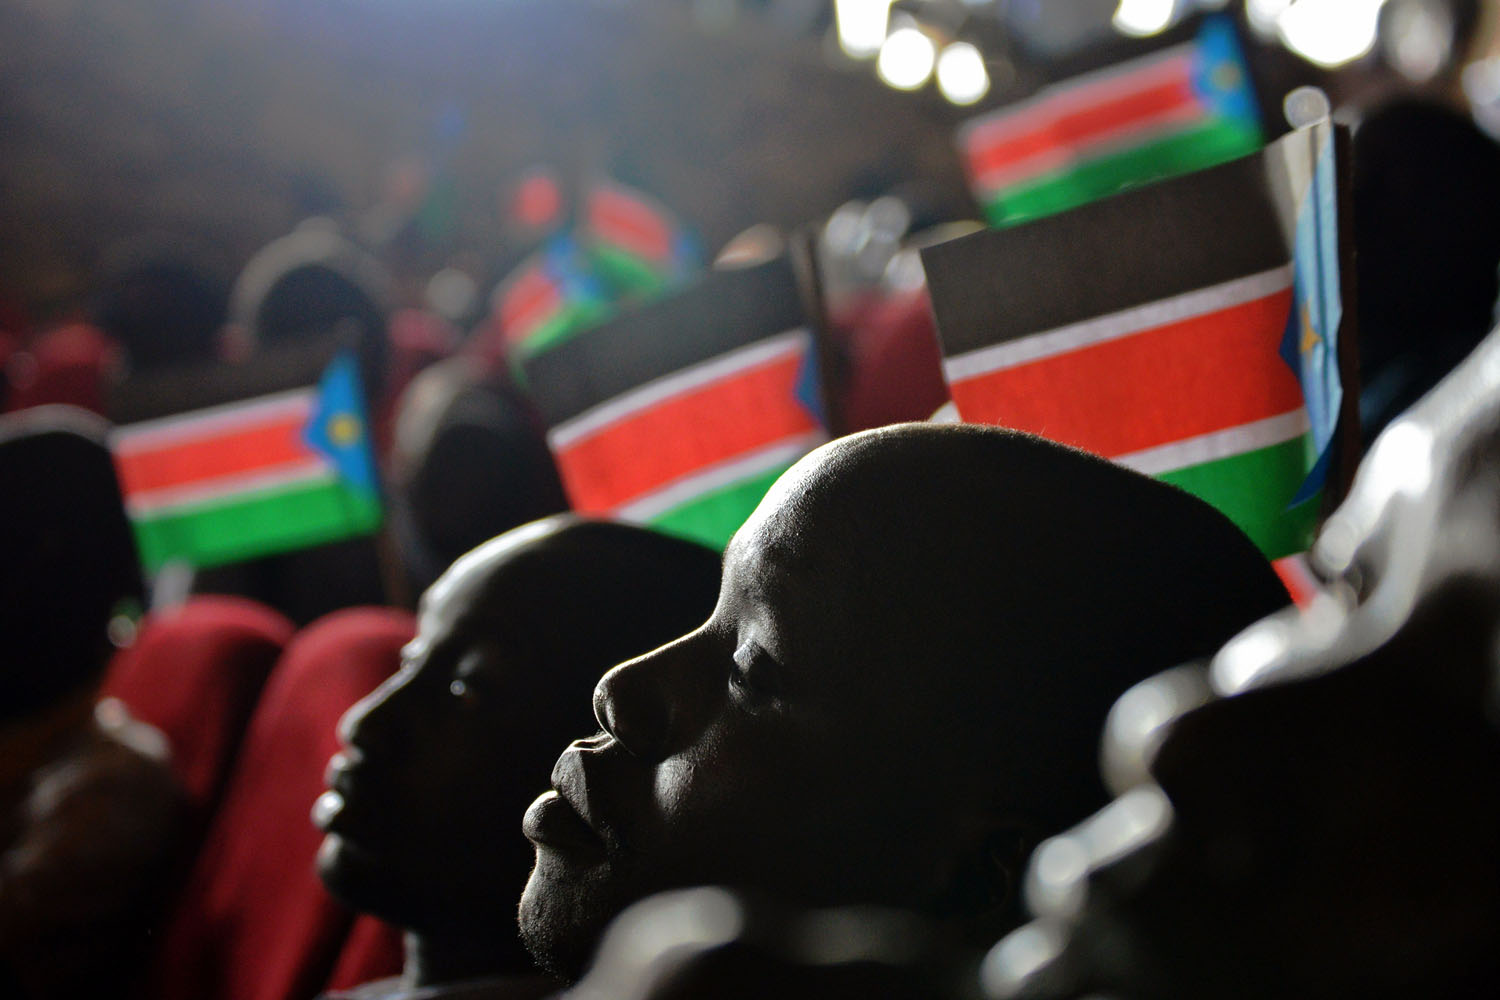 Jul. 29, 2014. Young people attend an anniversary celebration of the Red Army Foundation (RAF) in Juba. In the early 1980s, the SPLA recruited and began training boys as young as 12 to fight in its independence battle with Sudan, in a group called the Red Army.